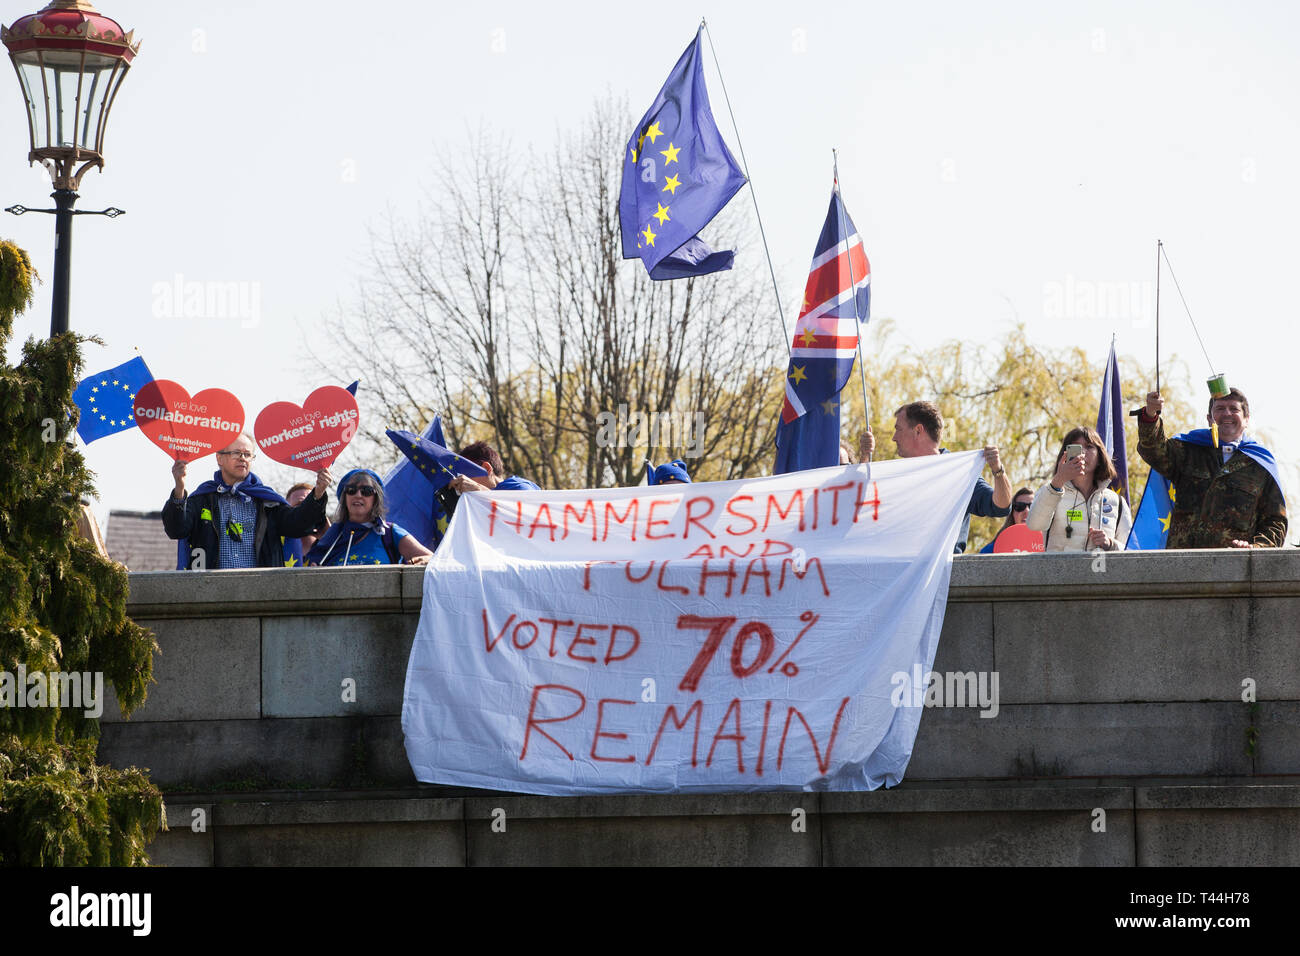 London, UK. 29th March, 2019. Pro-EU activists contest the final leg of the March to Leave on the day on which the UK was originally to have left the  - Stock Image